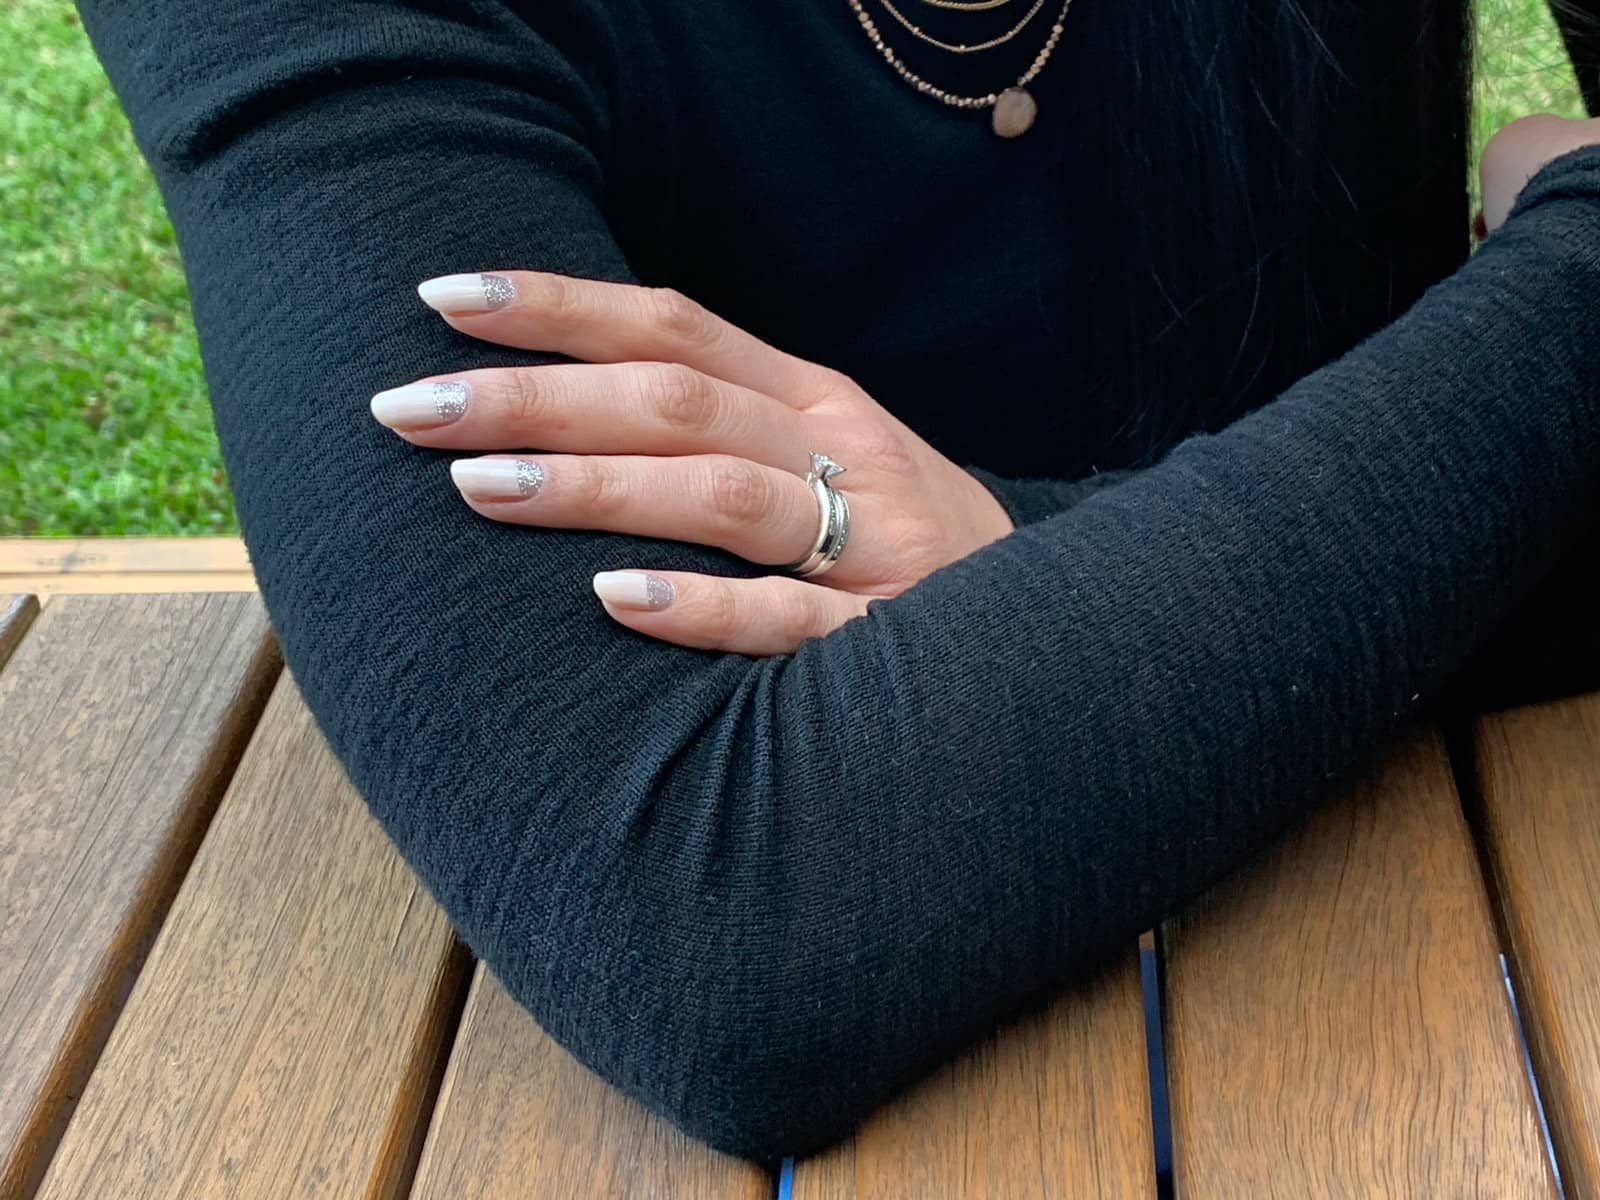 A close-up of a woman's arms, folded. She has nail art on her fingernails – silver glitter near the cuticles, and the remainder a light beige colour. She is wearing a silver wedding and engagement ring on her fourth finger.